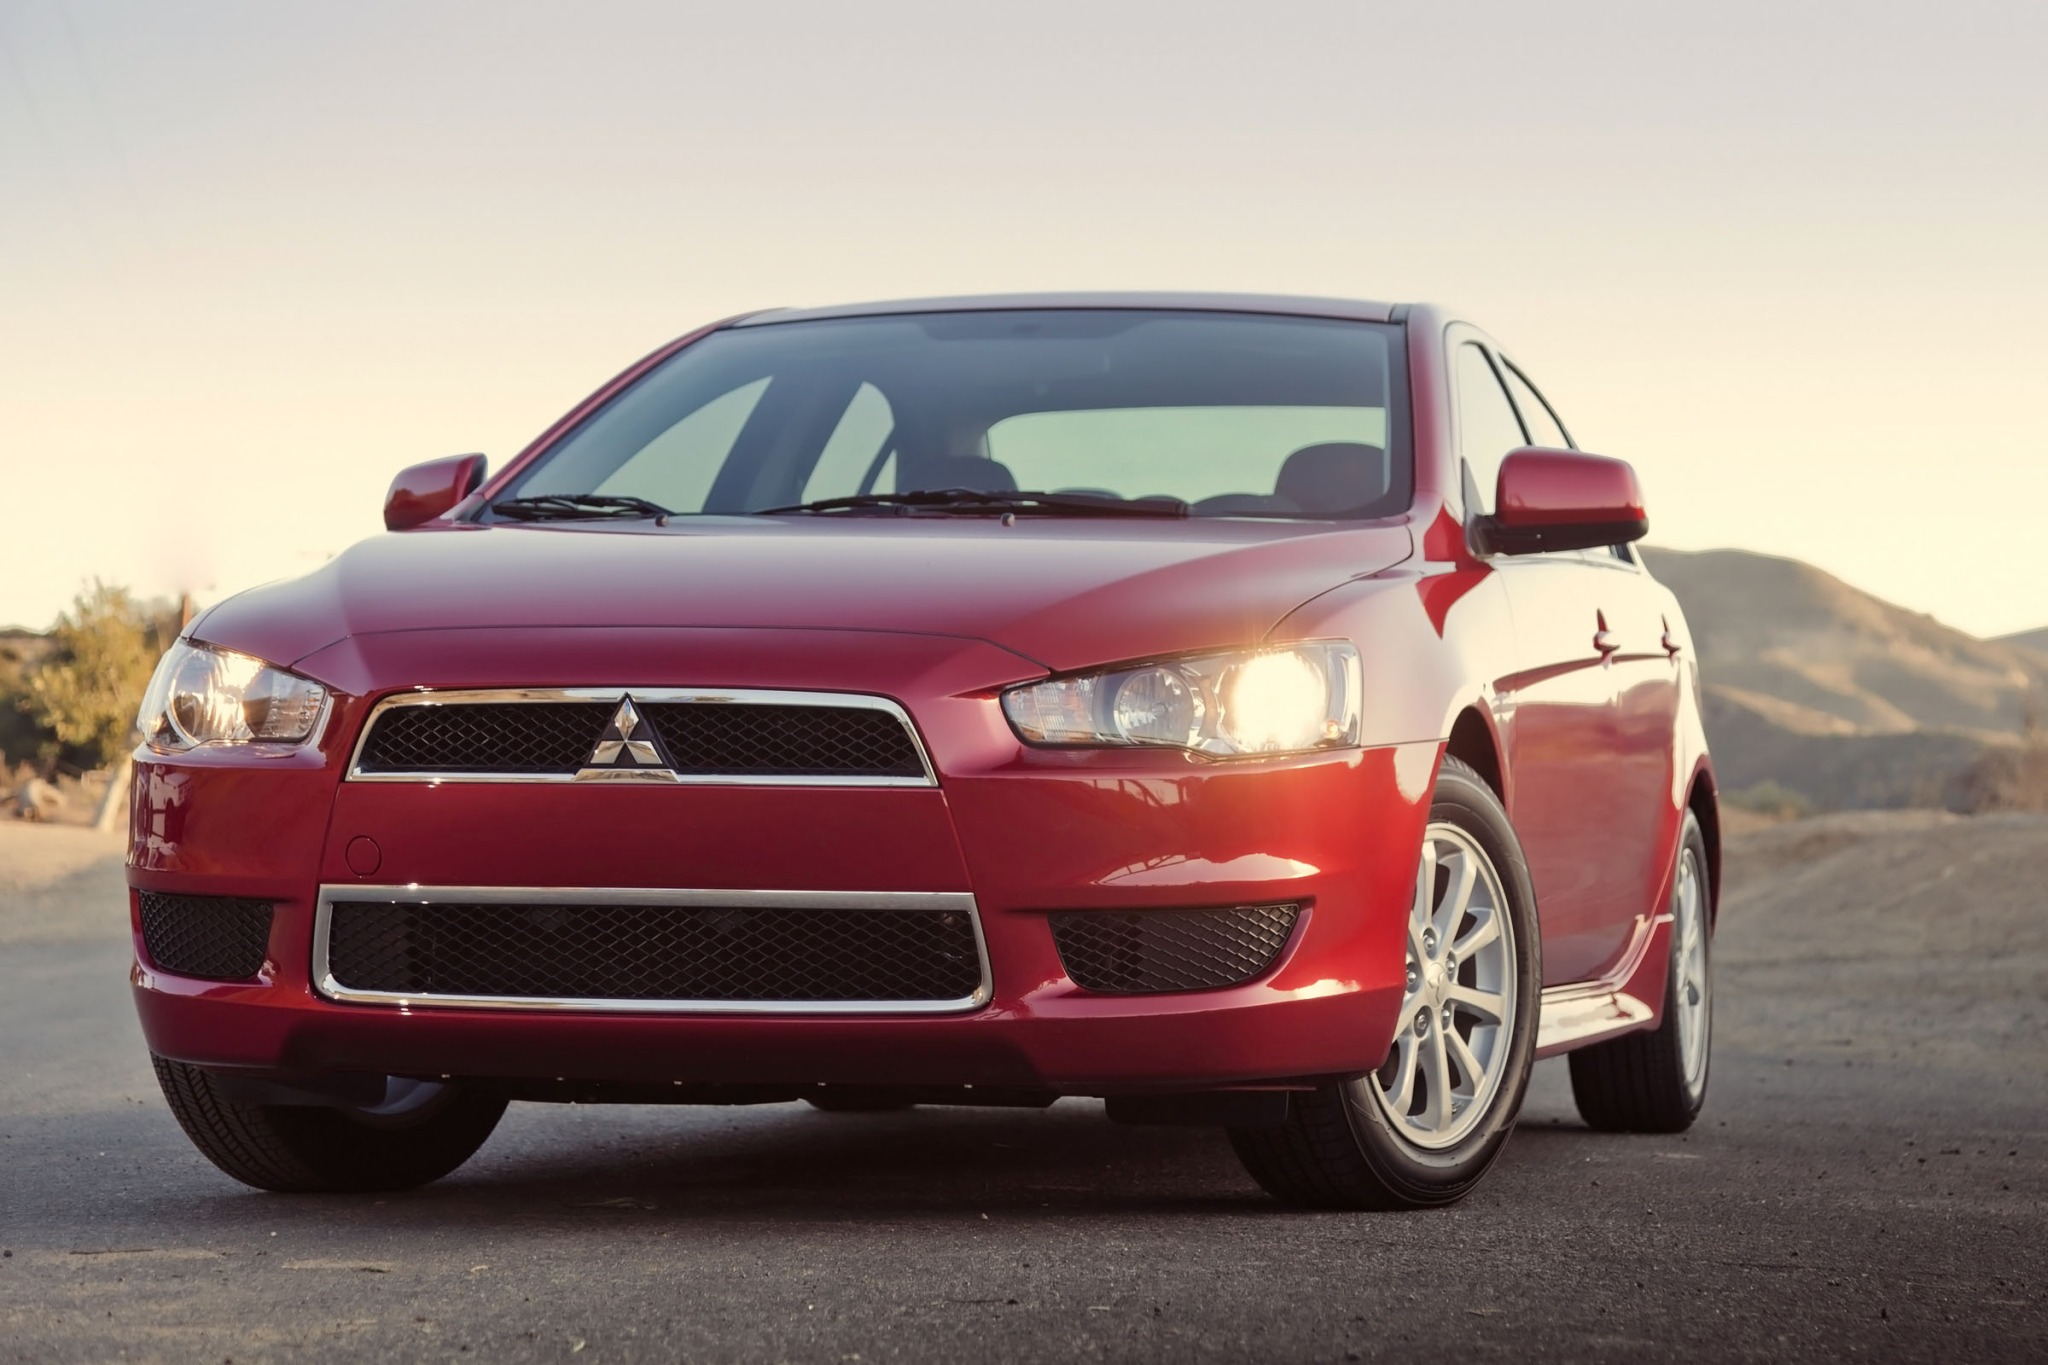 mitsubishi lancer GT sedan The often overlooked Wallpapers HD